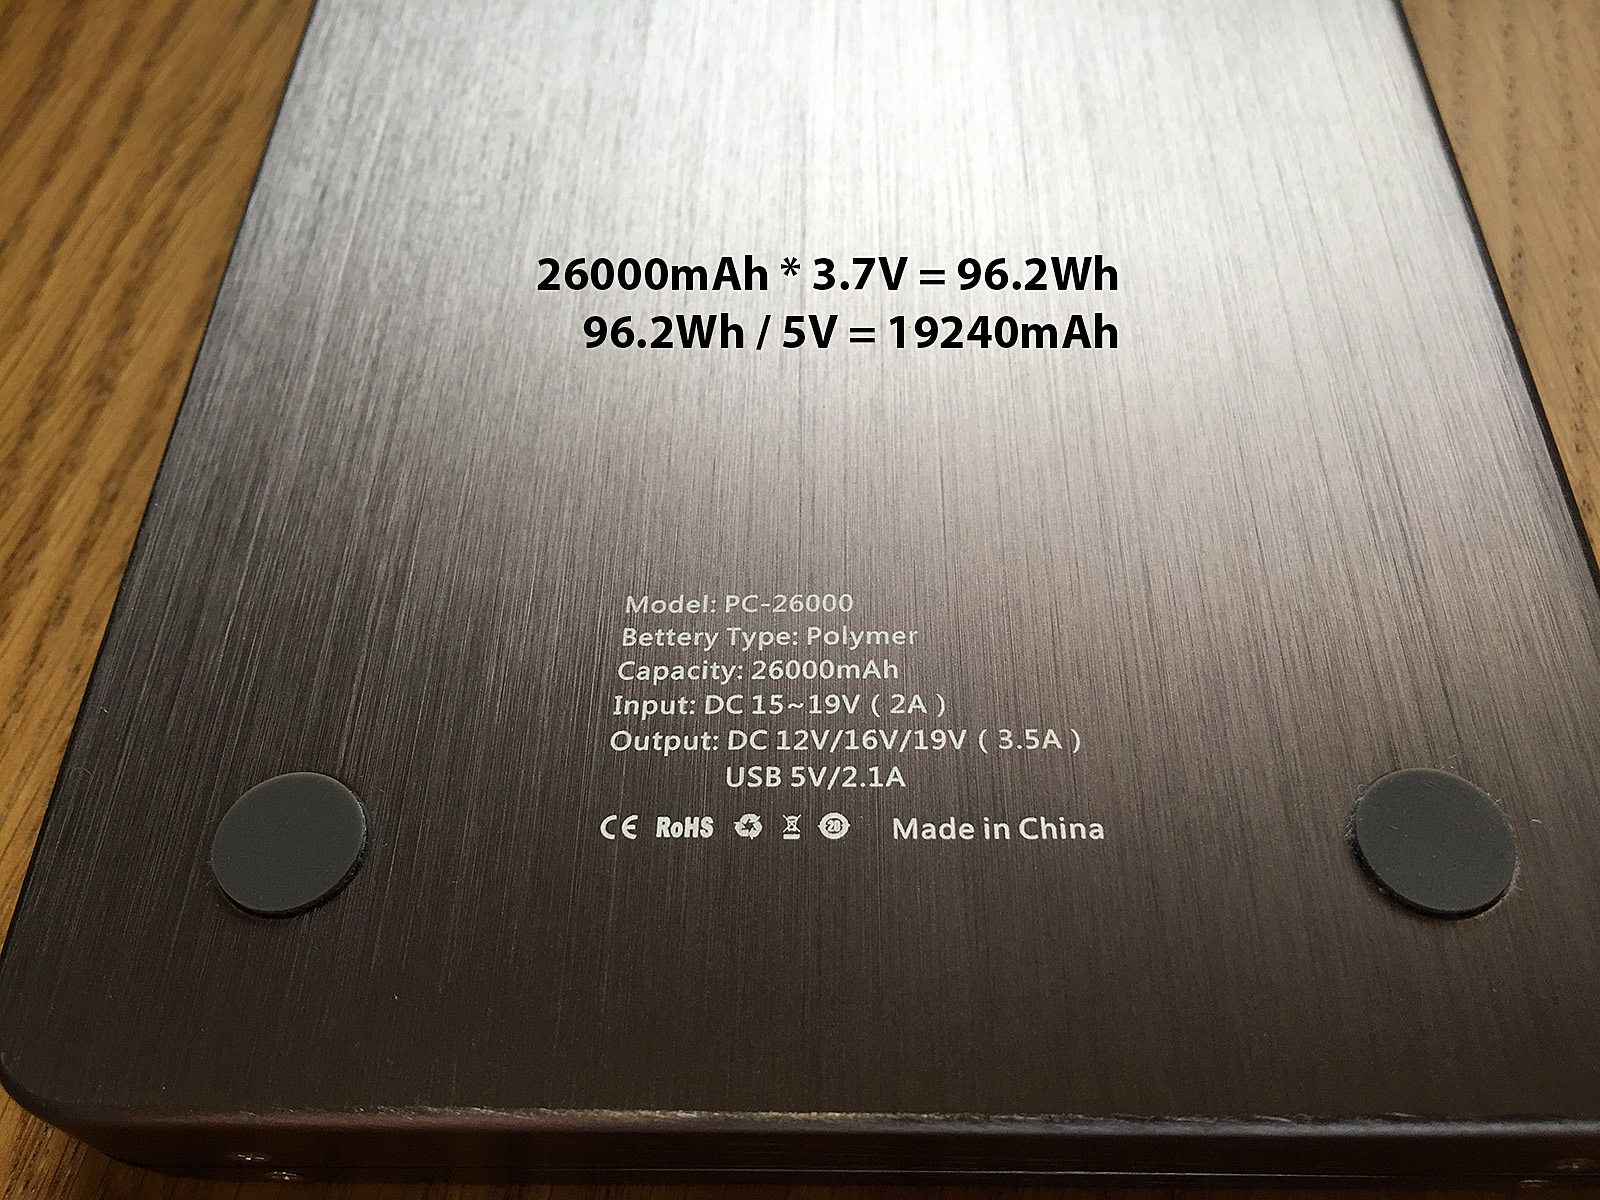 The Intocircuit battery pack specifies a 'capacity' of 26000mAh, but this isn't really what you get. It is not a lie, but, like most other manufacturers, they are using an industry standard that you won't be.